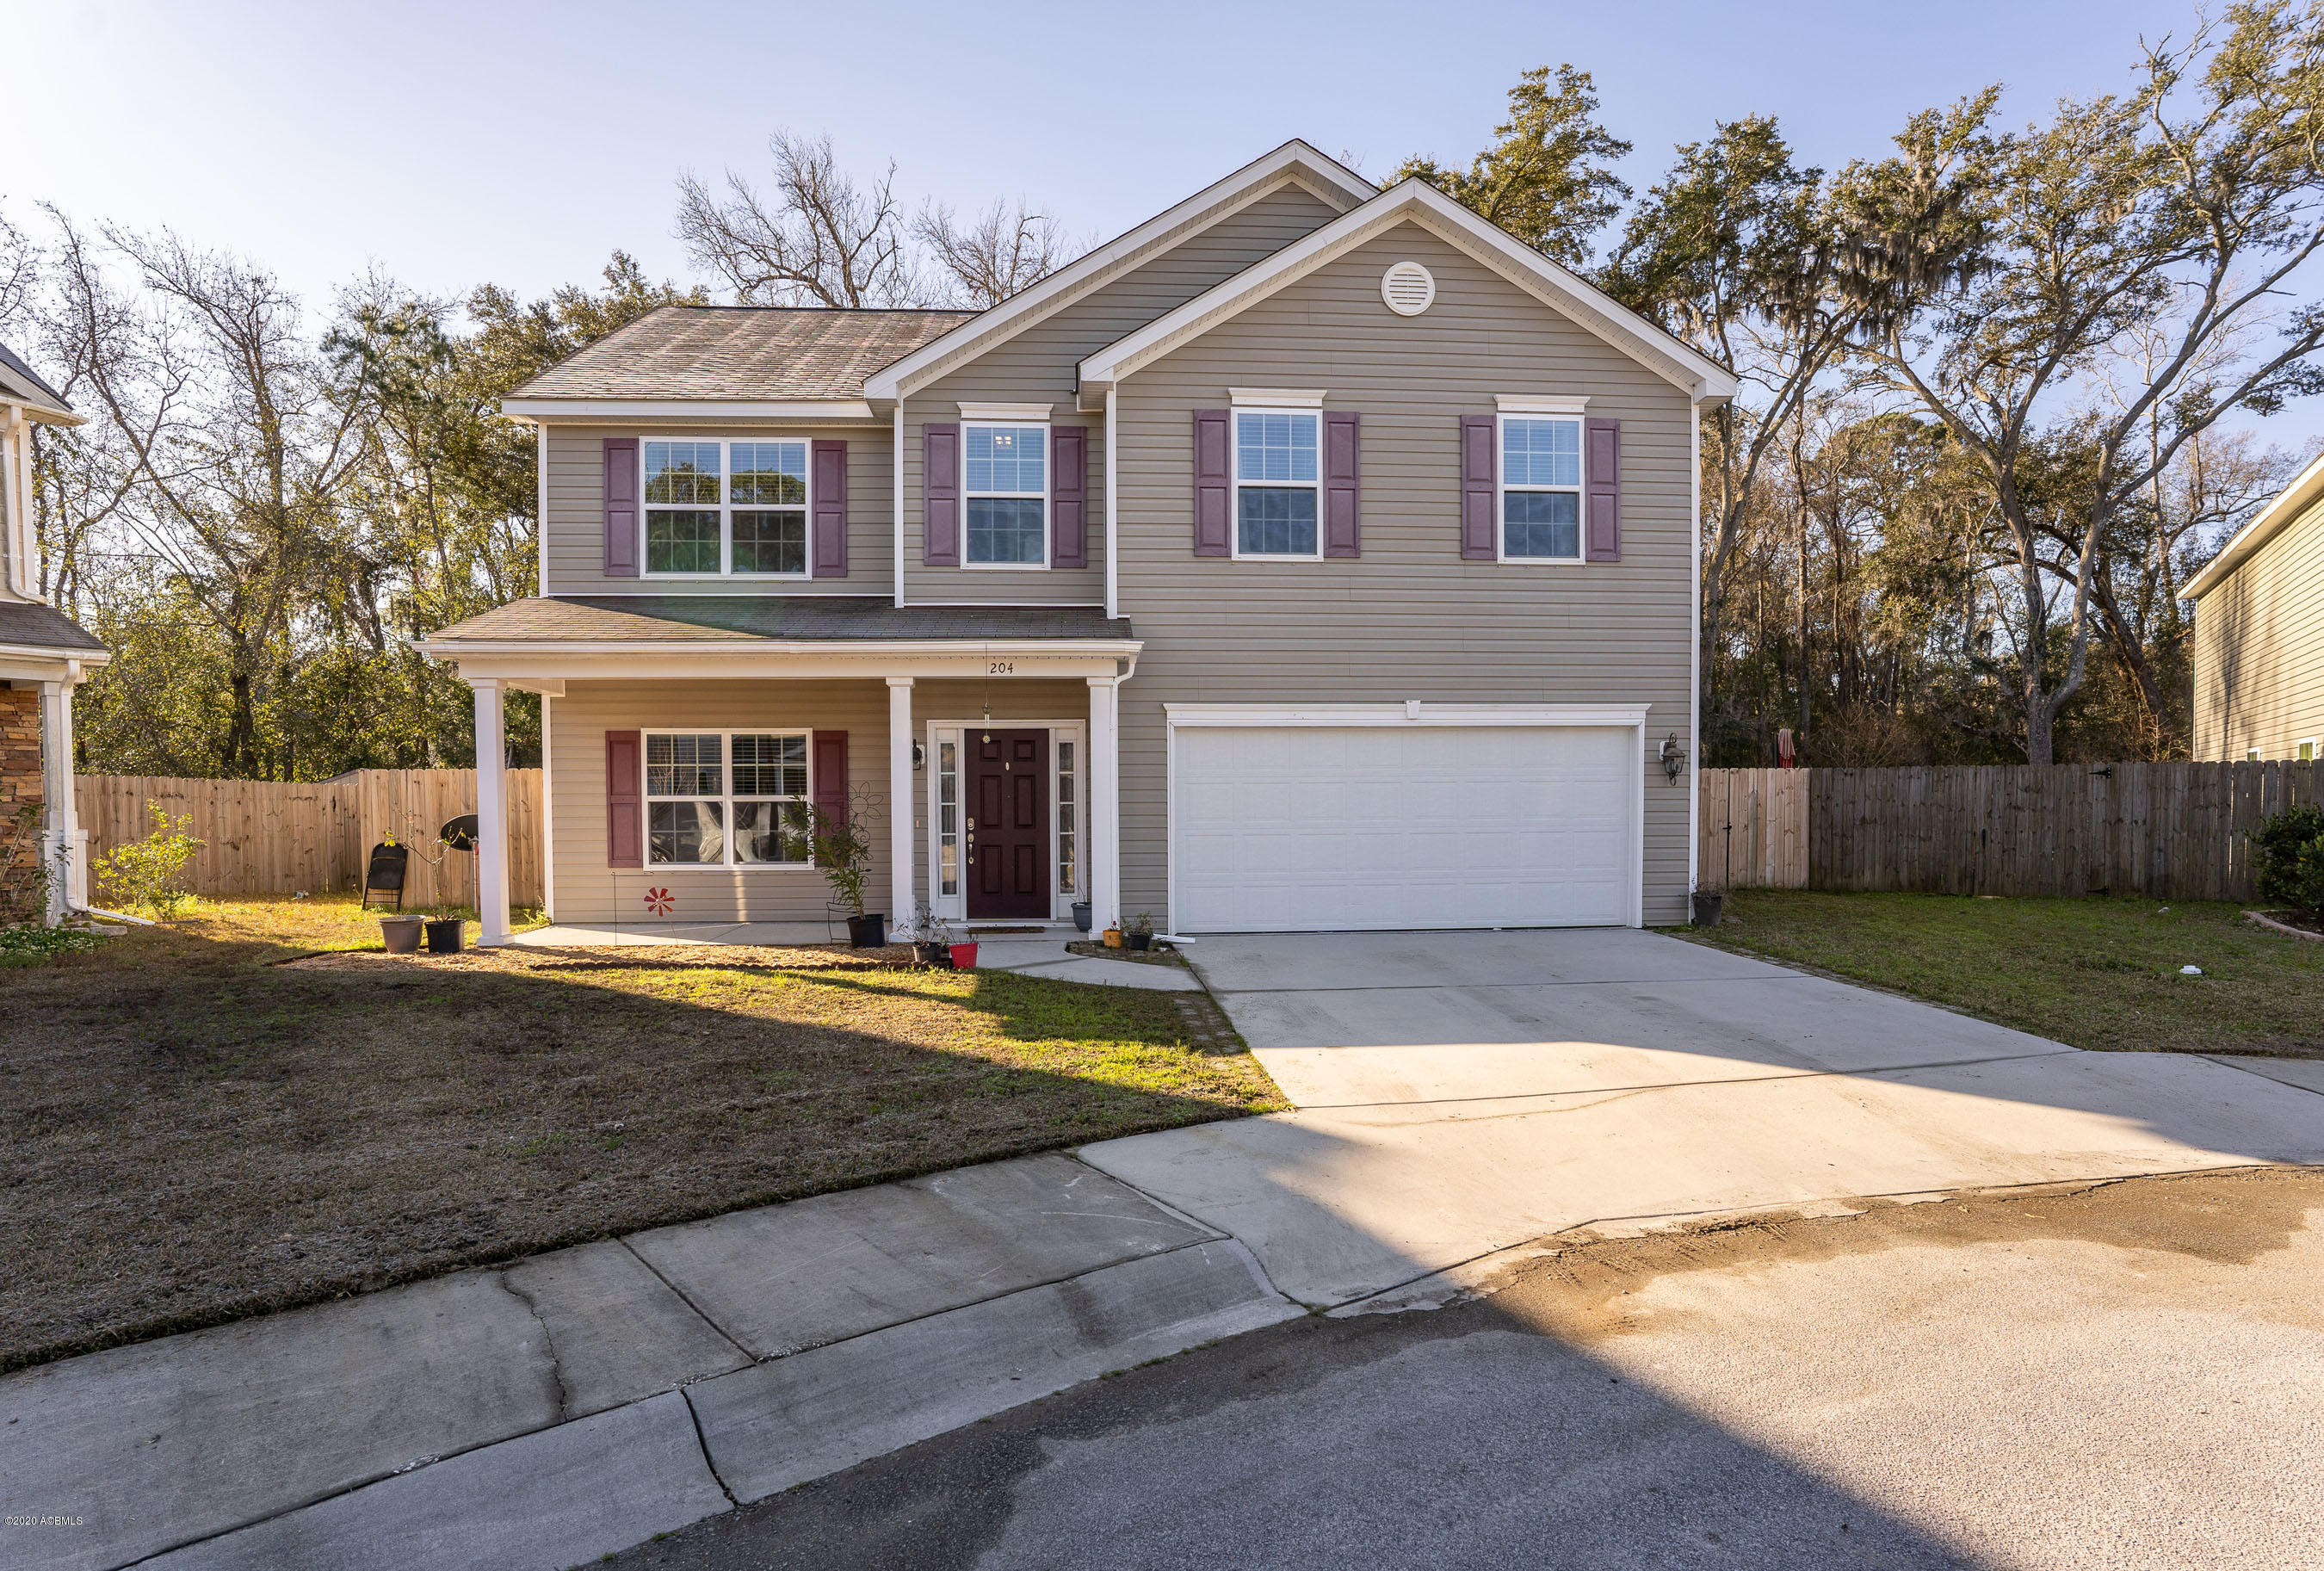 Photo of 204 Mission Way, Beaufort, SC 29906